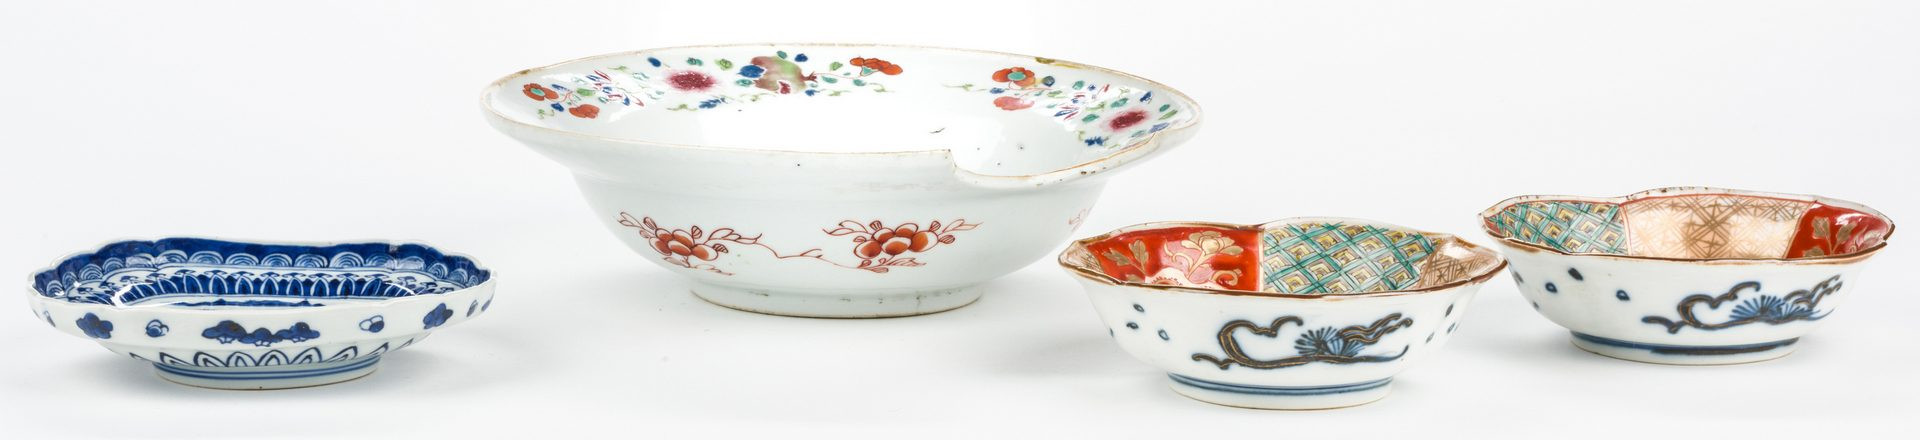 Lot 646: 4 pcs Asian Porcelain inc. 18th c. Barber or Bleeder Bowl